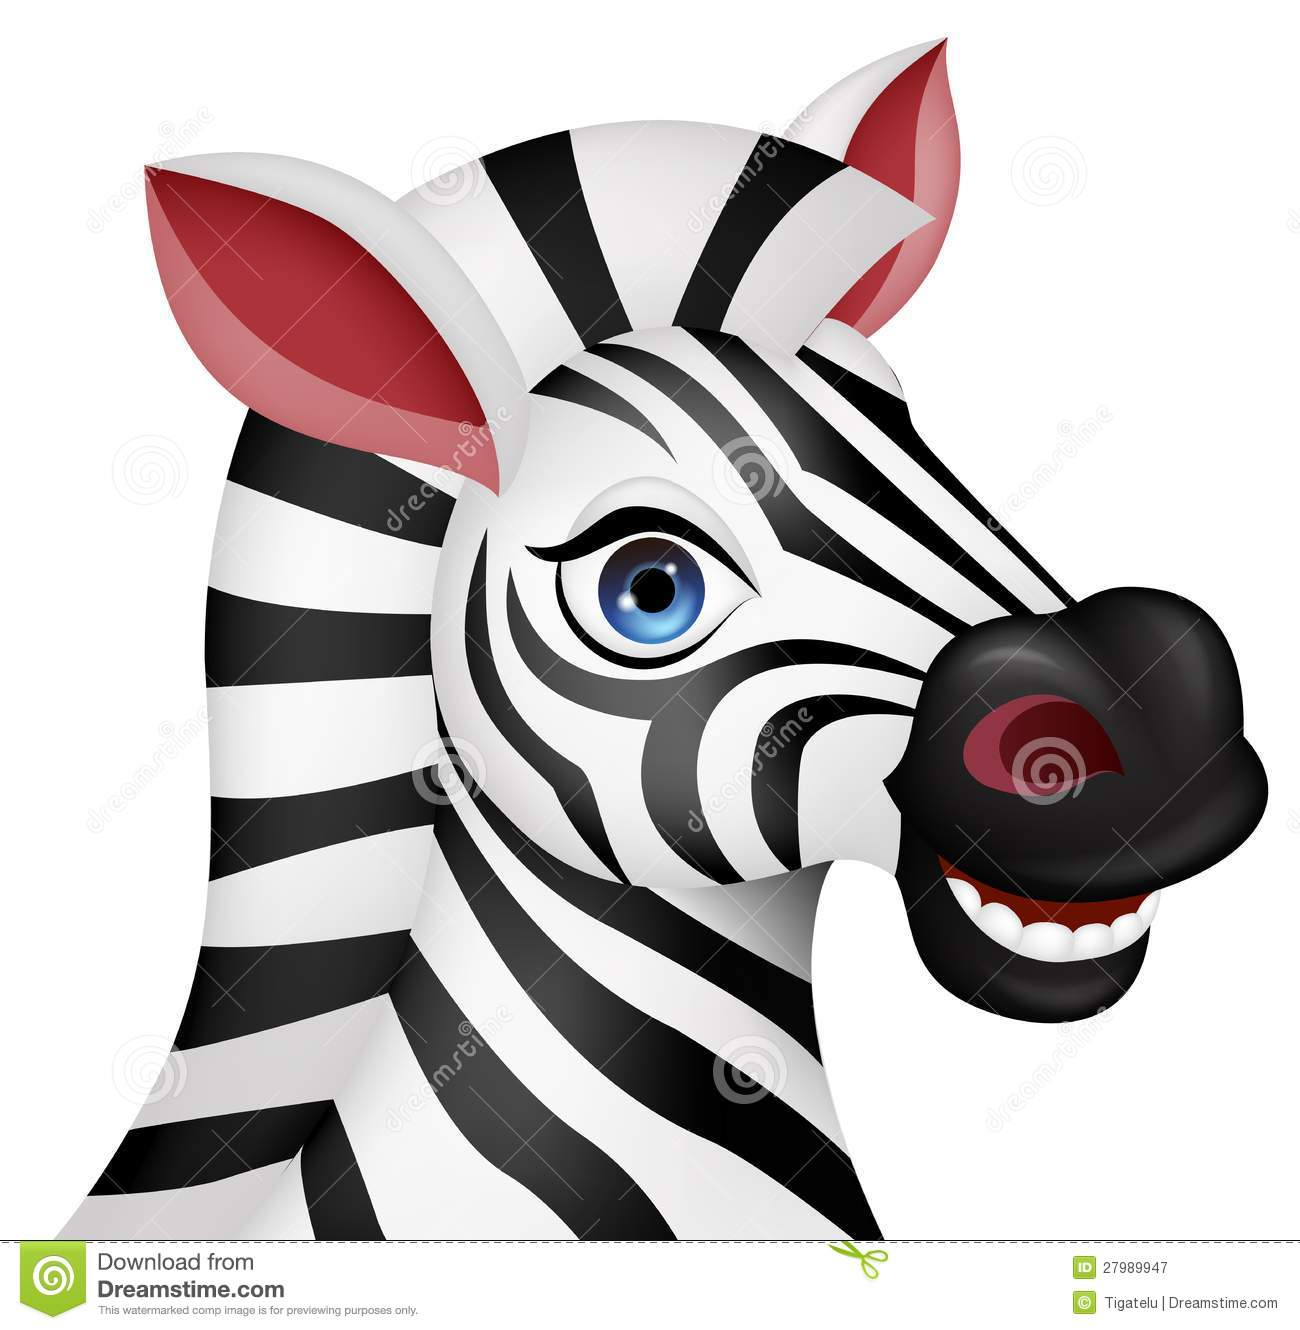 Zebra head cartoon images - photo#2